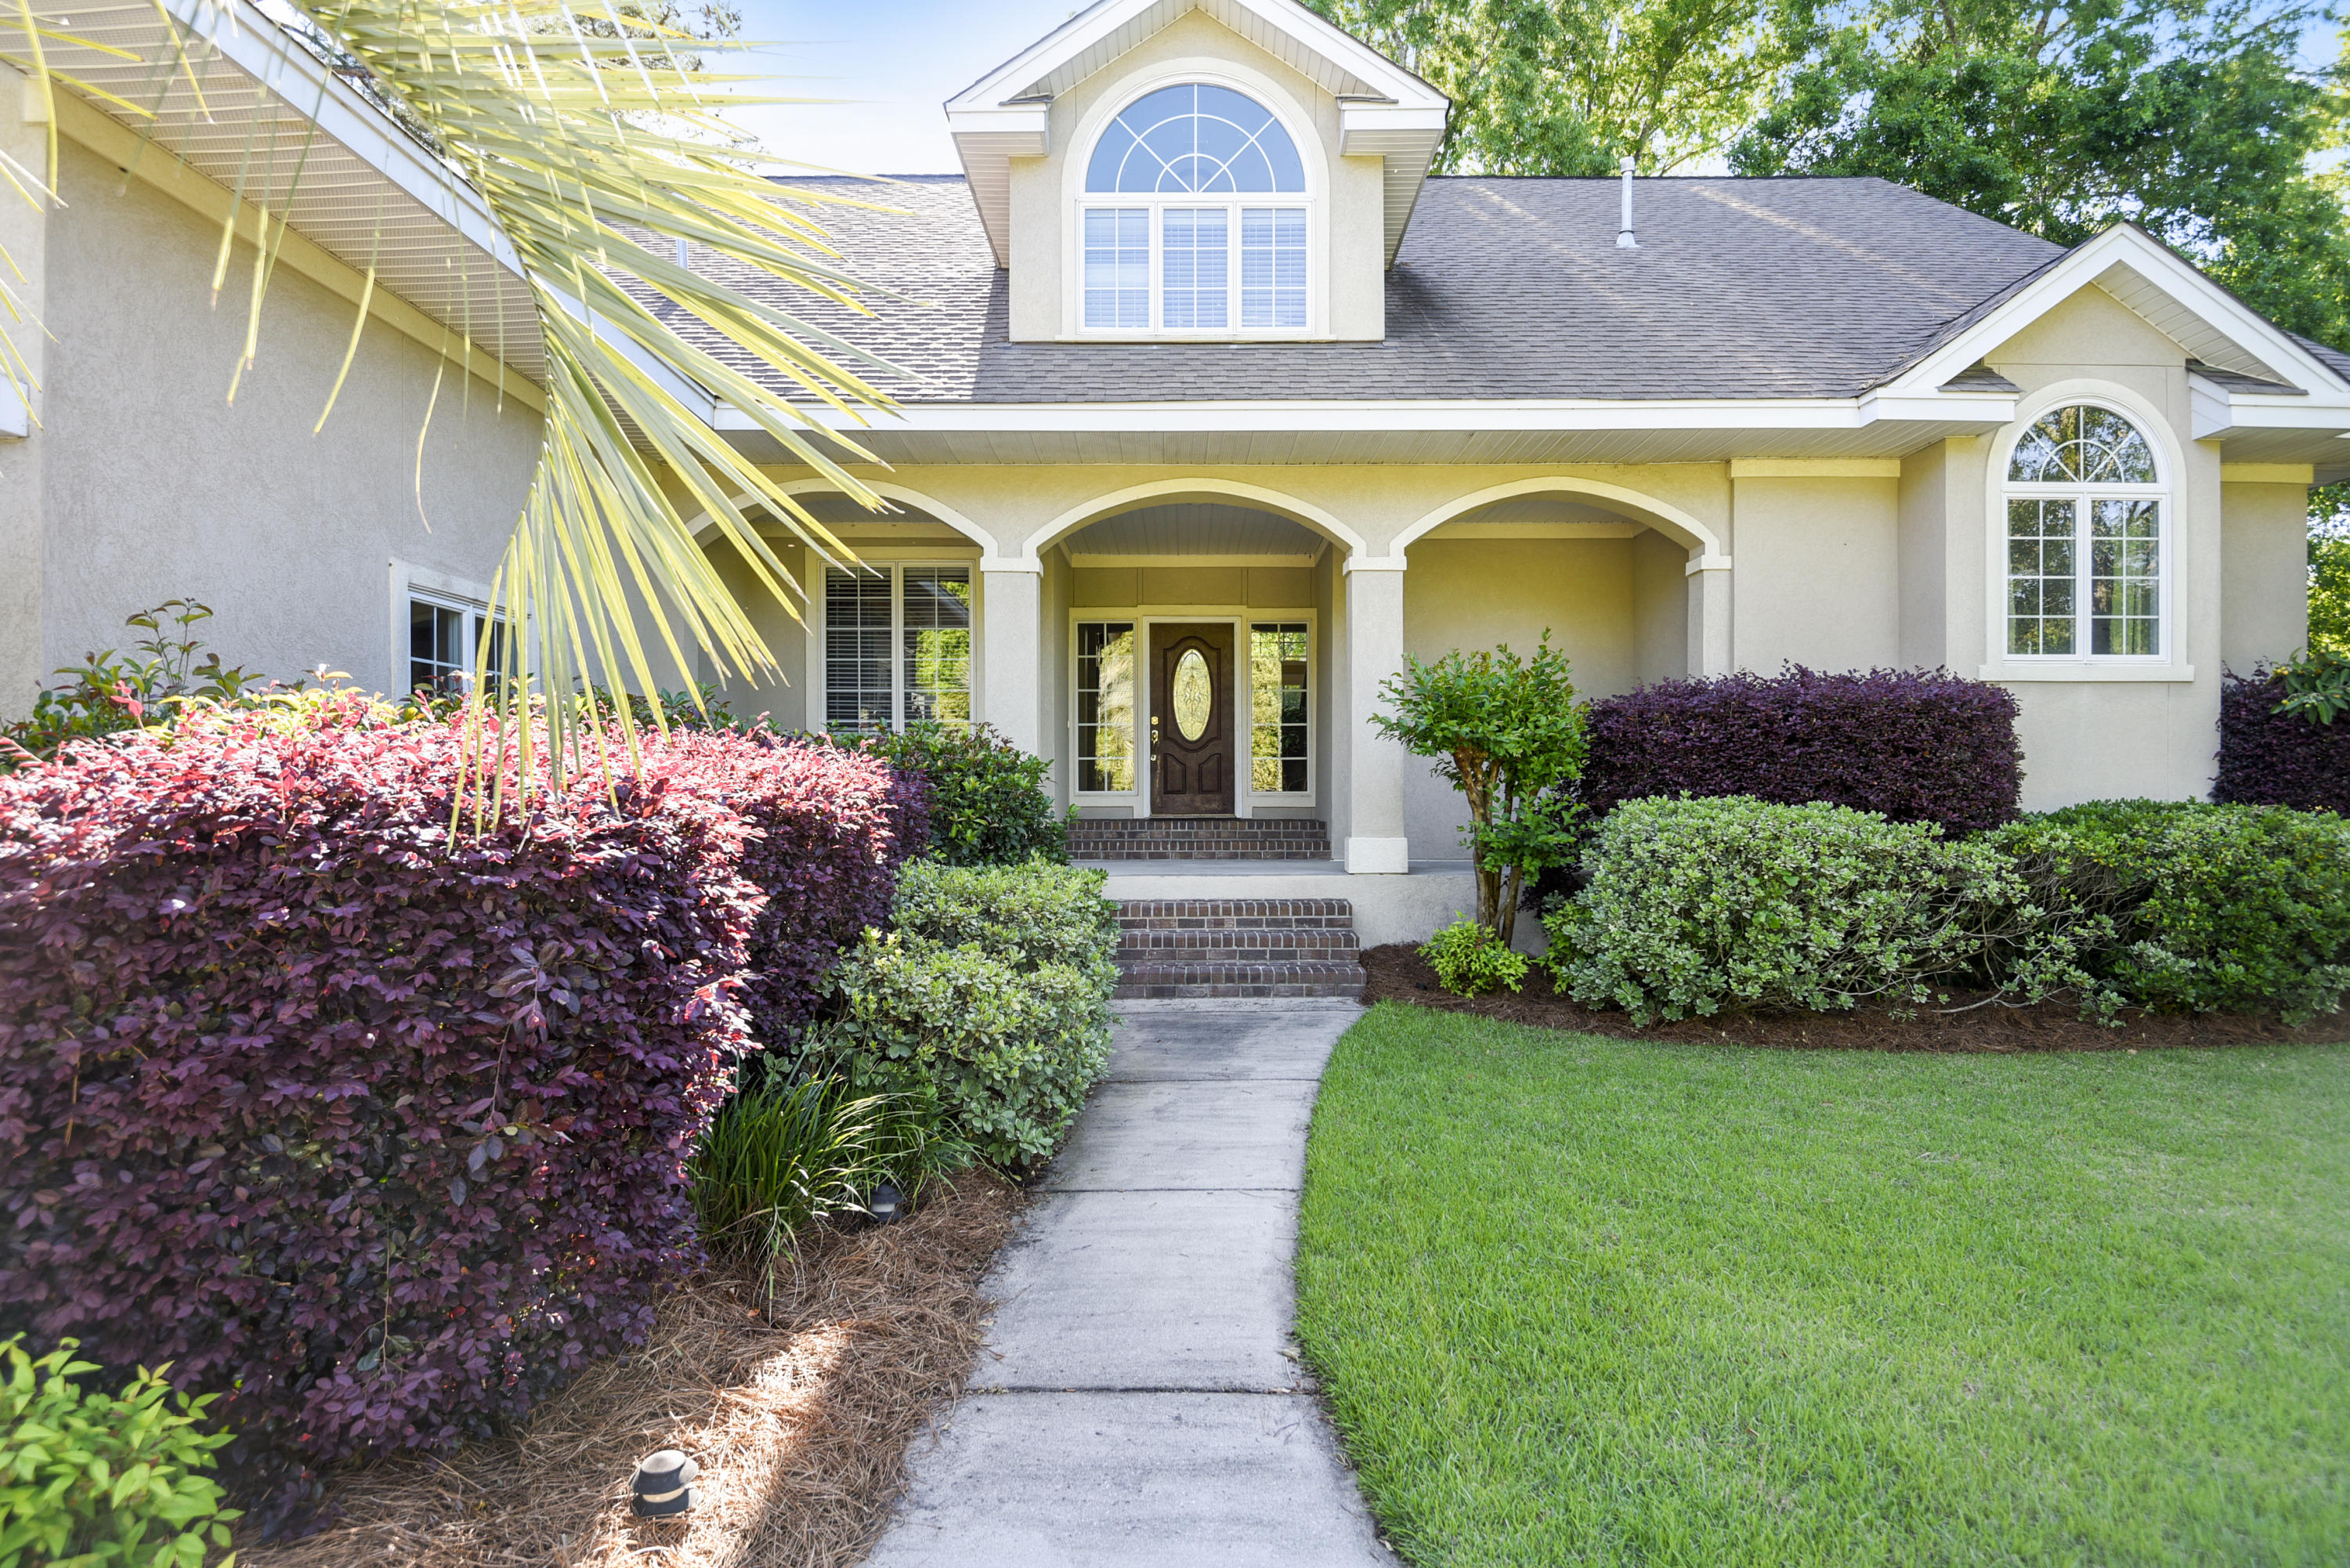 Coosaw Creek Country Club Homes For Sale - 8855 Fairway Woods, North Charleston, SC - 8